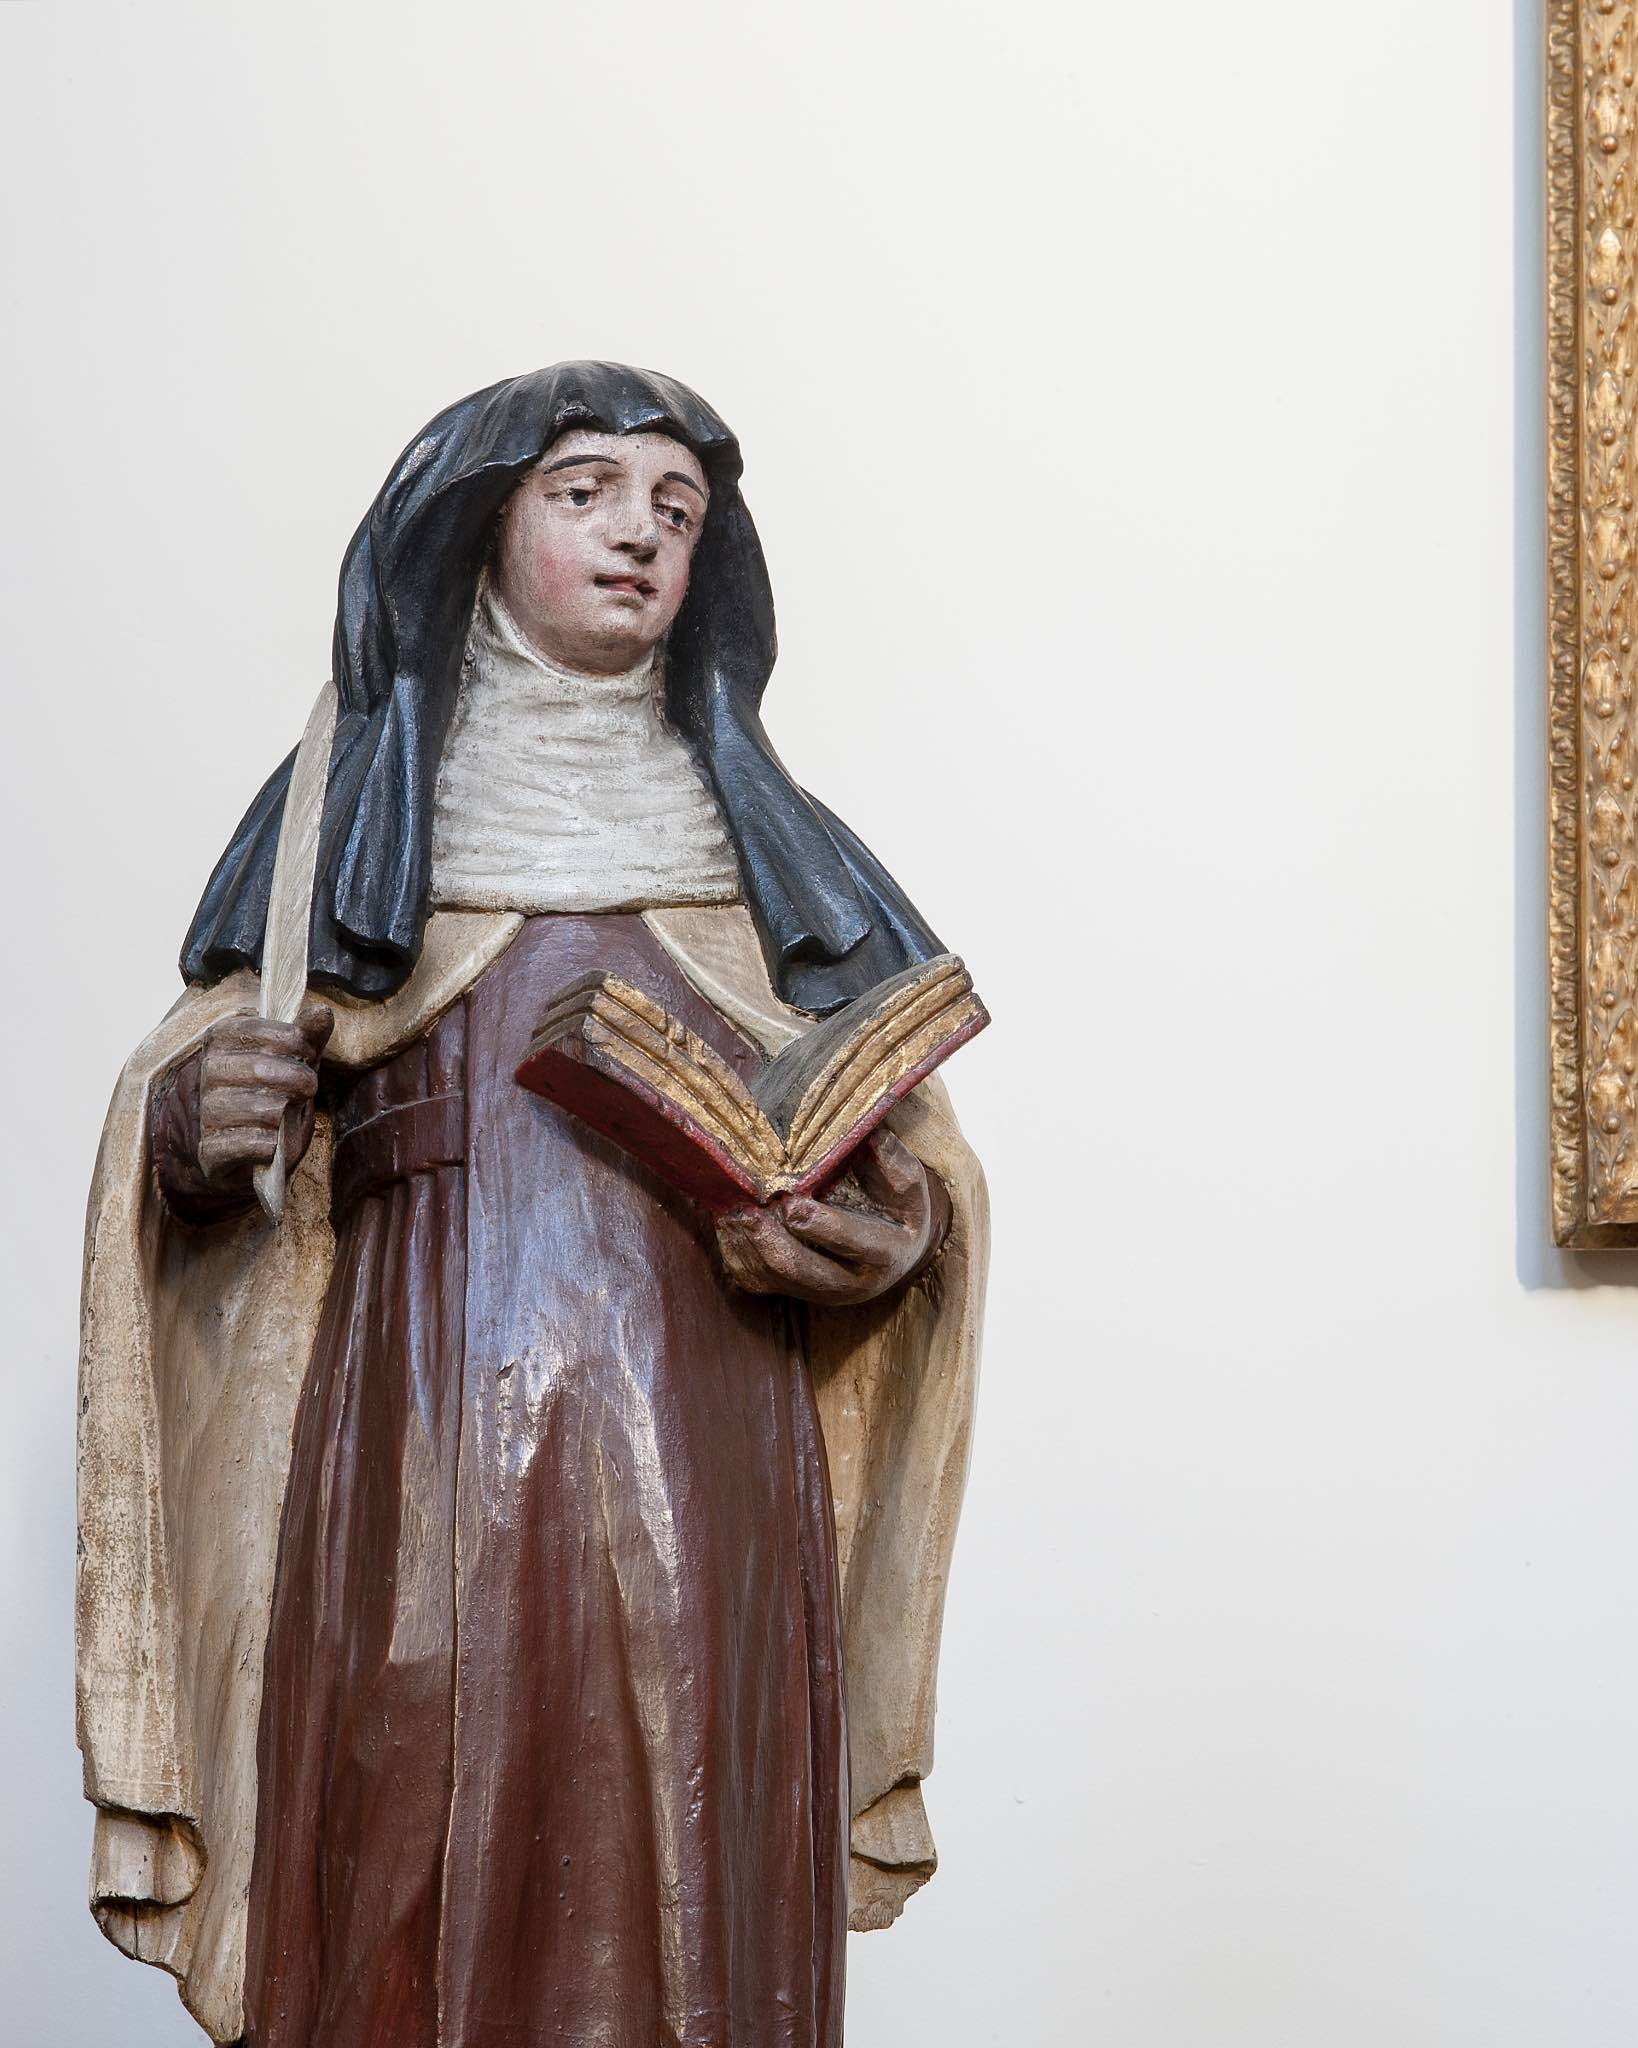 St. Teresa of Avila - Born at Avila in 1515, she entered the Carmelite order in 1535.During the course of a serious illness the following year, she developed the habit of mental prayer and underwent mystical experiences. She was responsible for reform of the Carmelite order, and her writings, particularly her distinctive contribution to mystical theology, led to her being named a Doctor of the Church by Pope Paul VI in 1970. She died in 1582 and her feast day is October 15th.